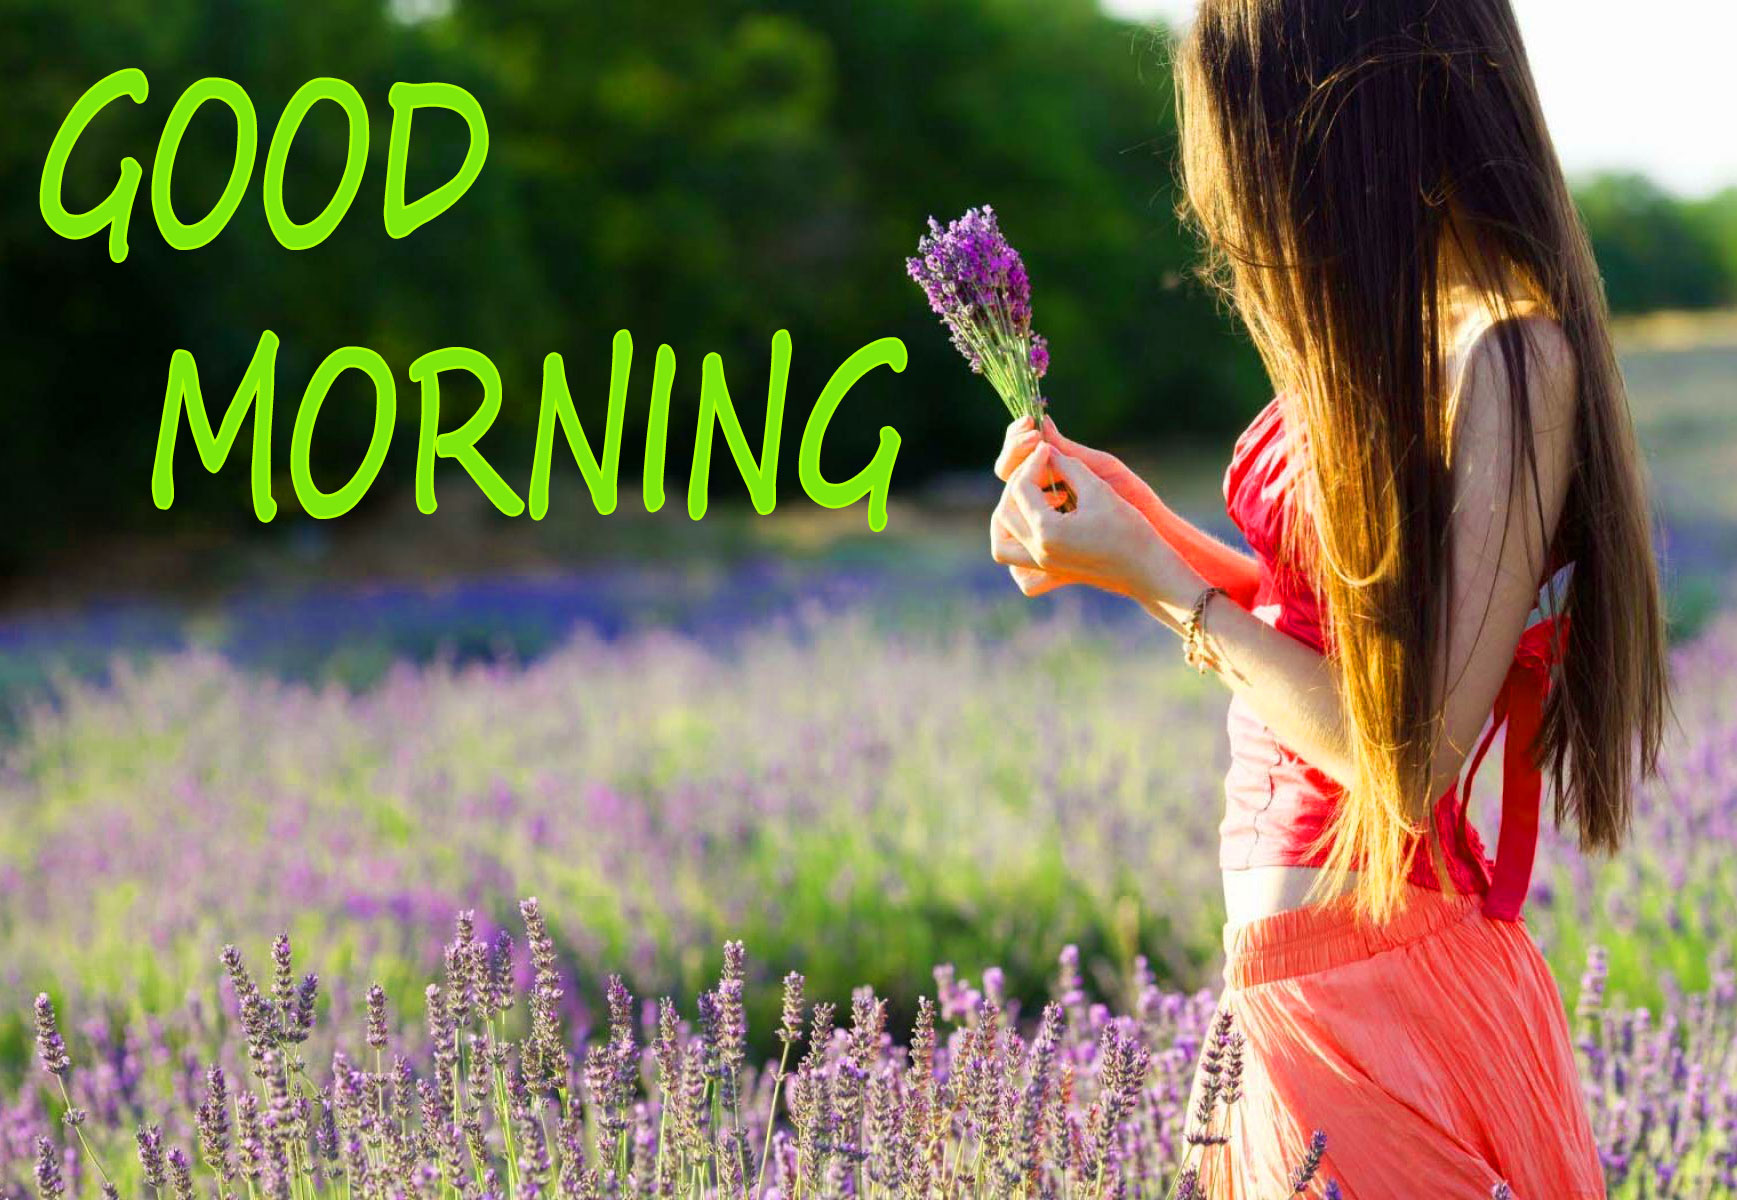 GOOD MORNING IMAGE WITH BEAUTIFUL FLOWERS NATURE WALLPAPER FOR BOYS